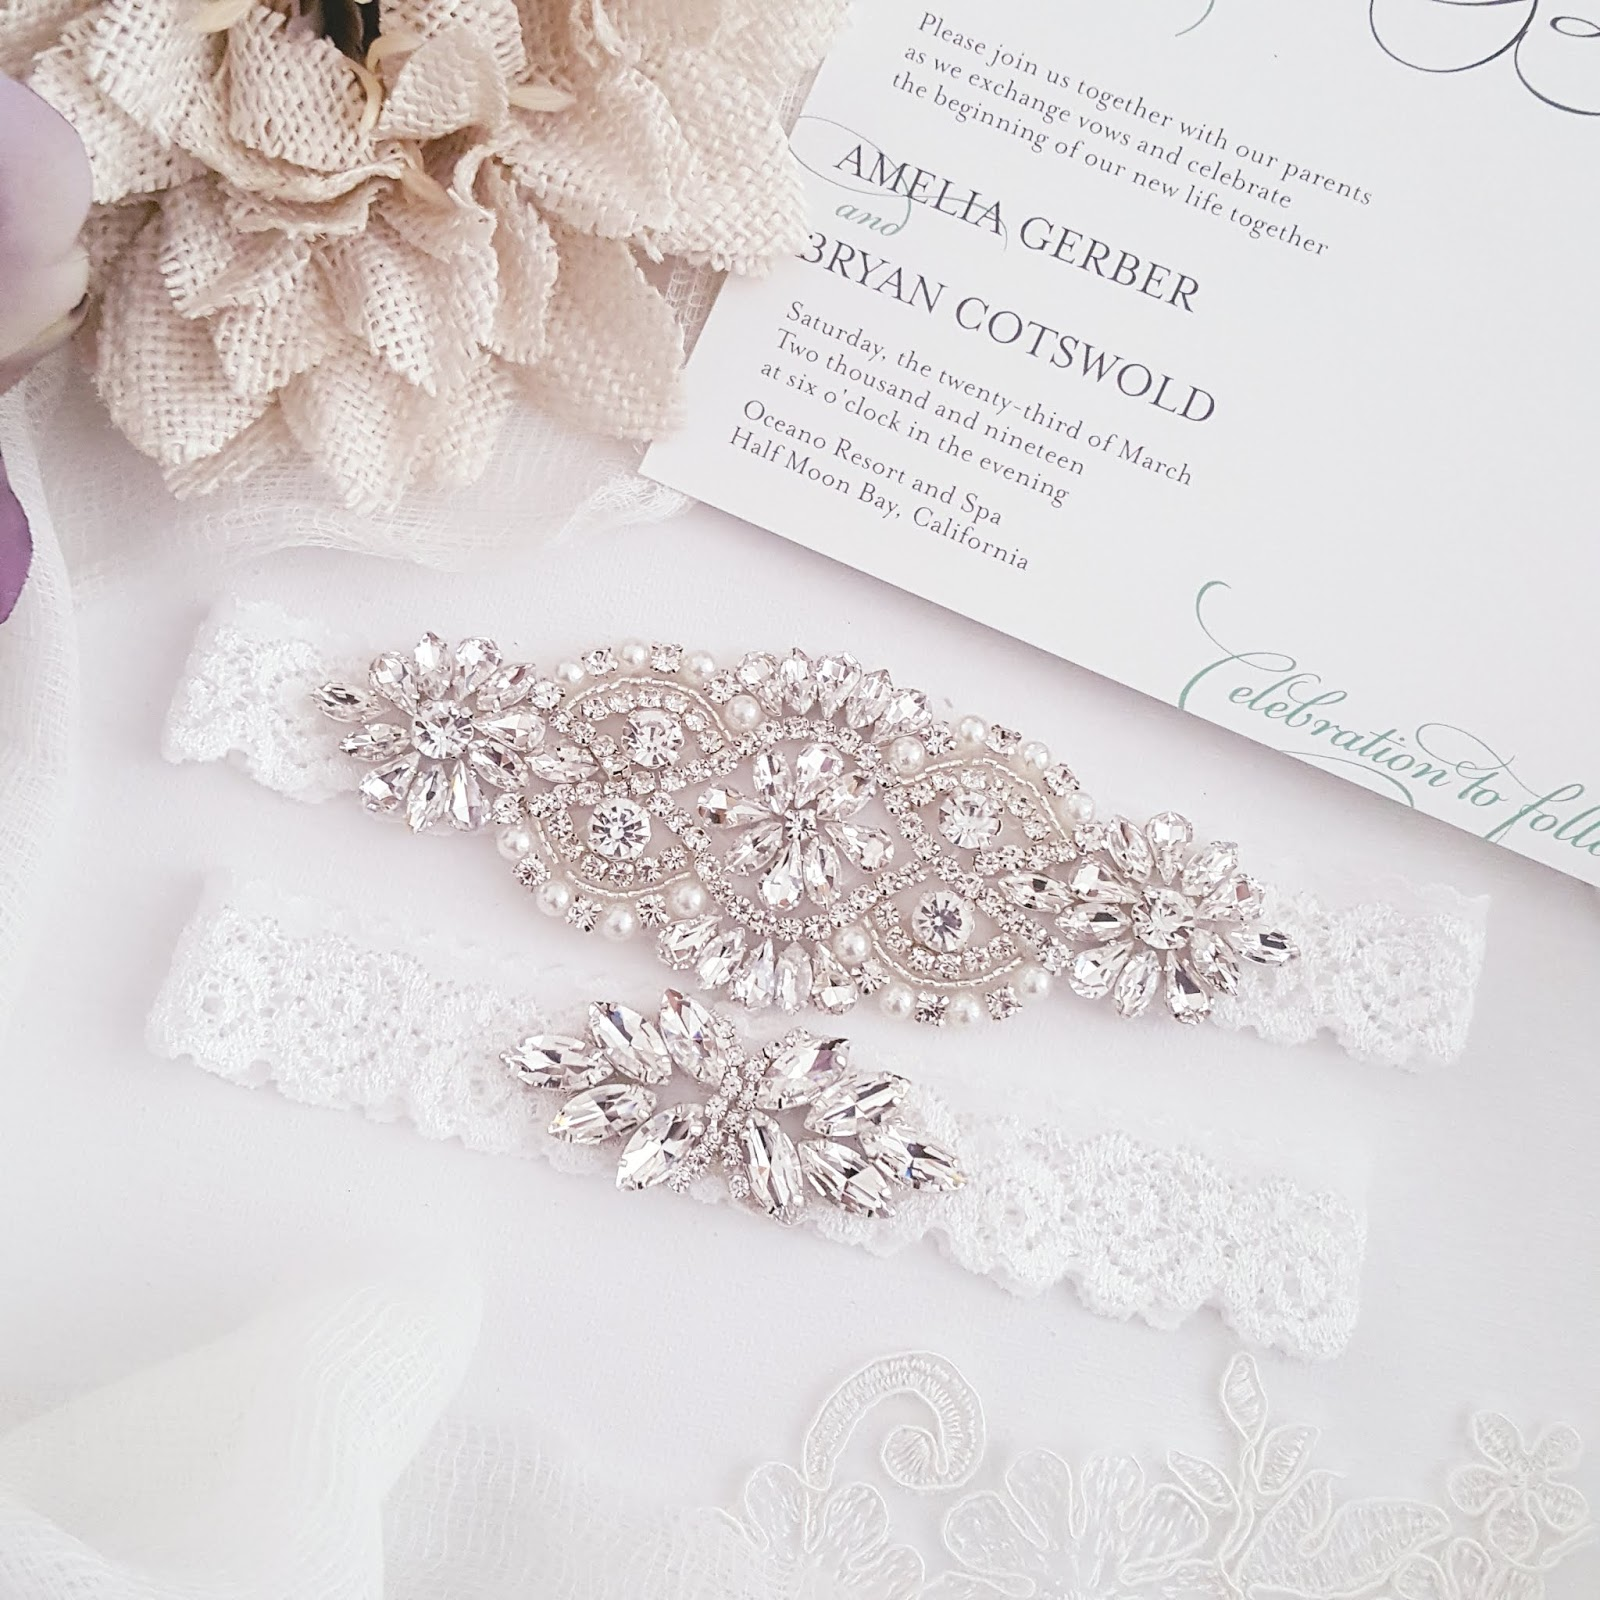 This handmade beaded crystal garter set is one of many wedding accessories from She Wore Flowers.